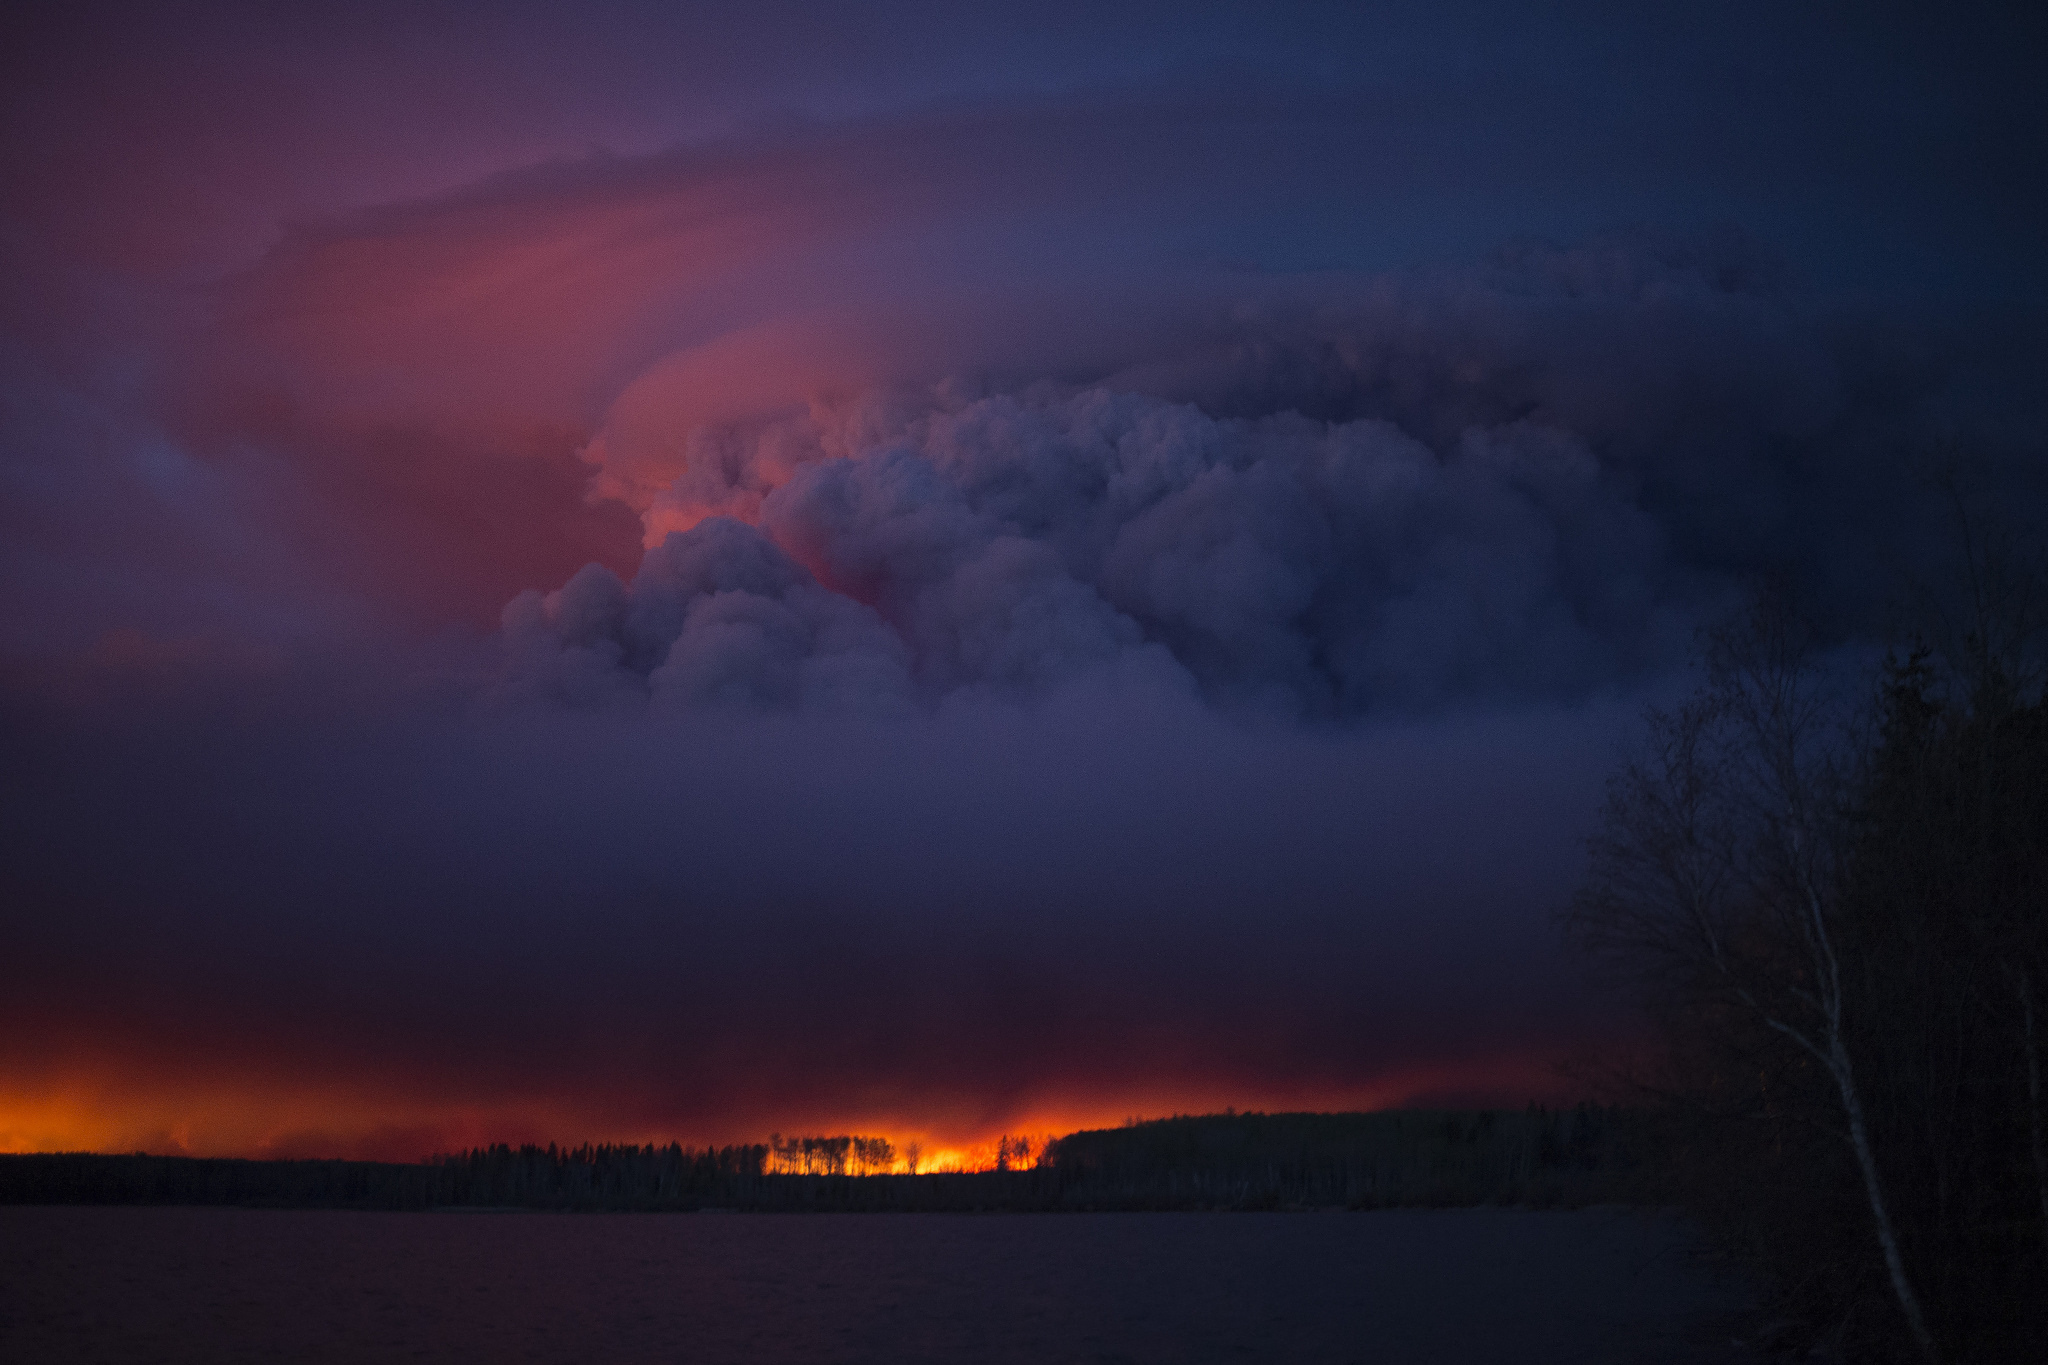 P hotograph by Chris Schwarz/Government of Alberta